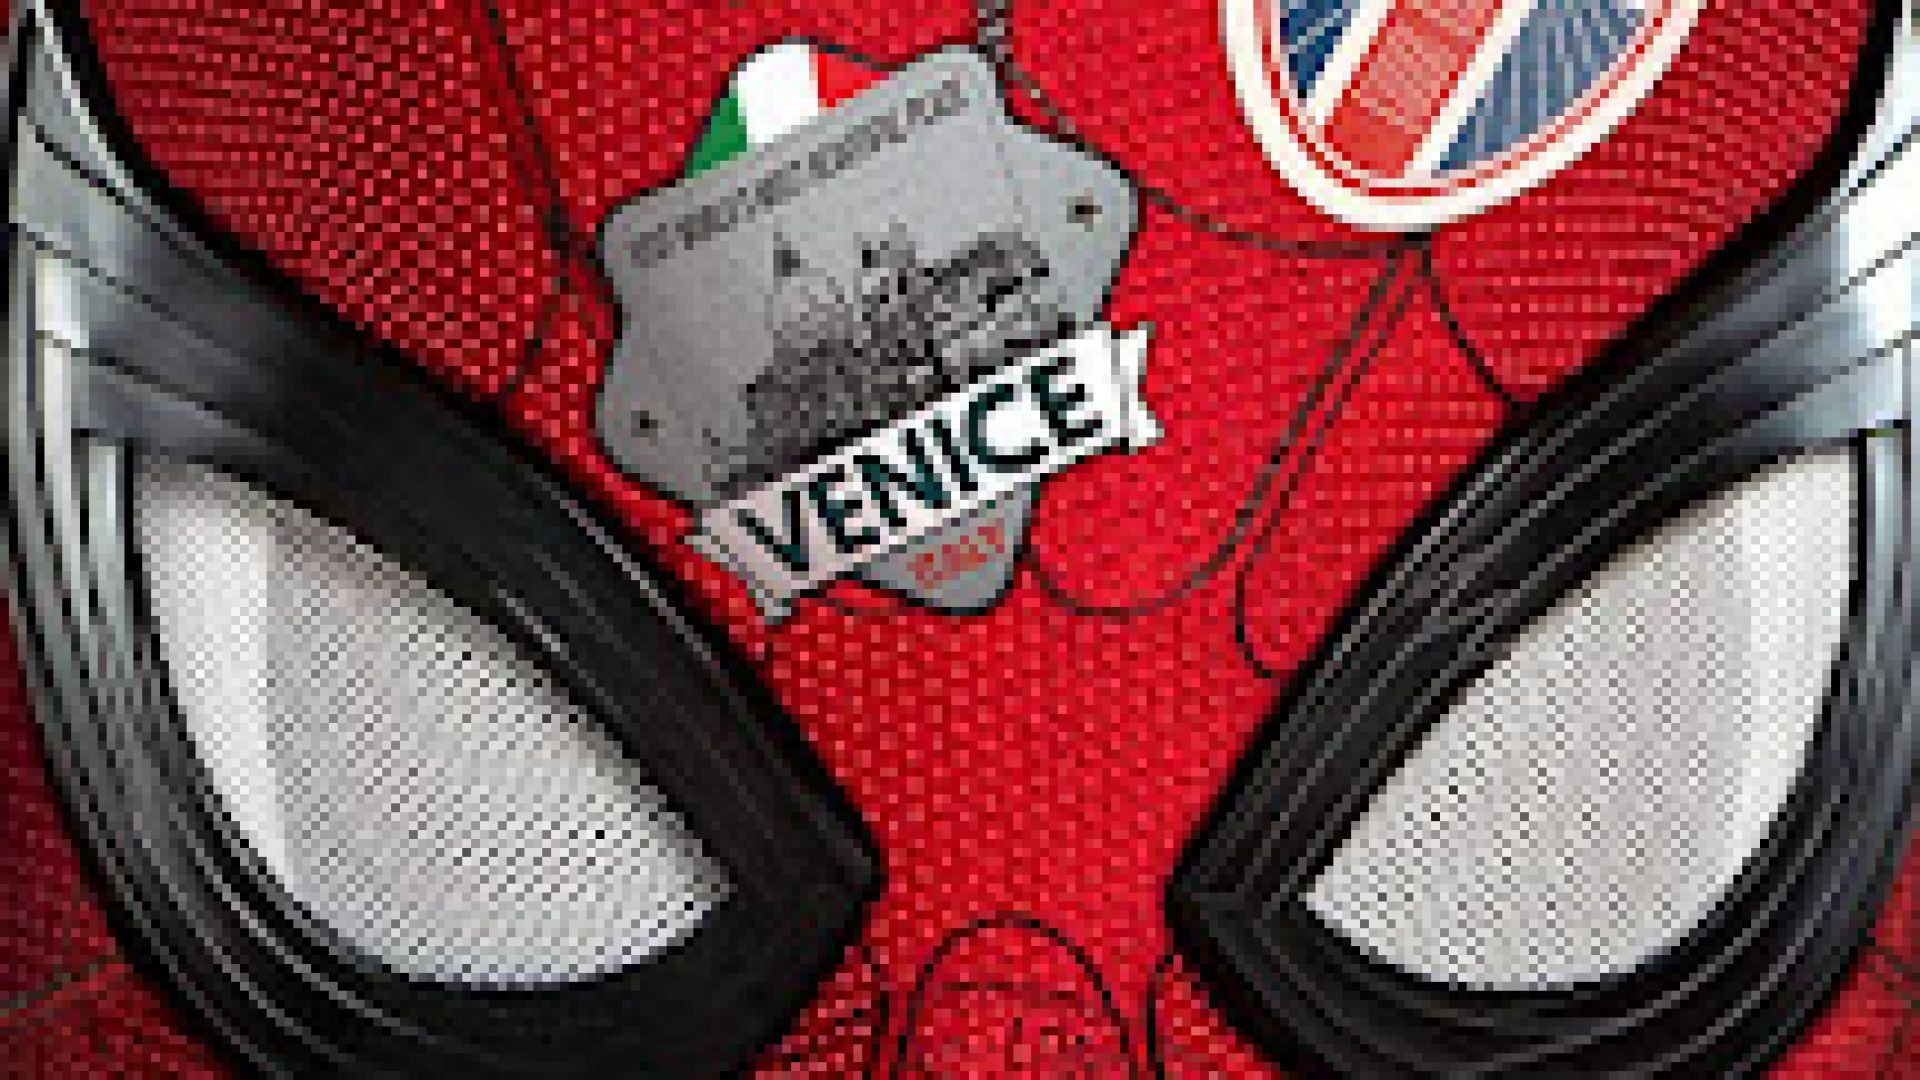 Spider man far from home 2019 full movie